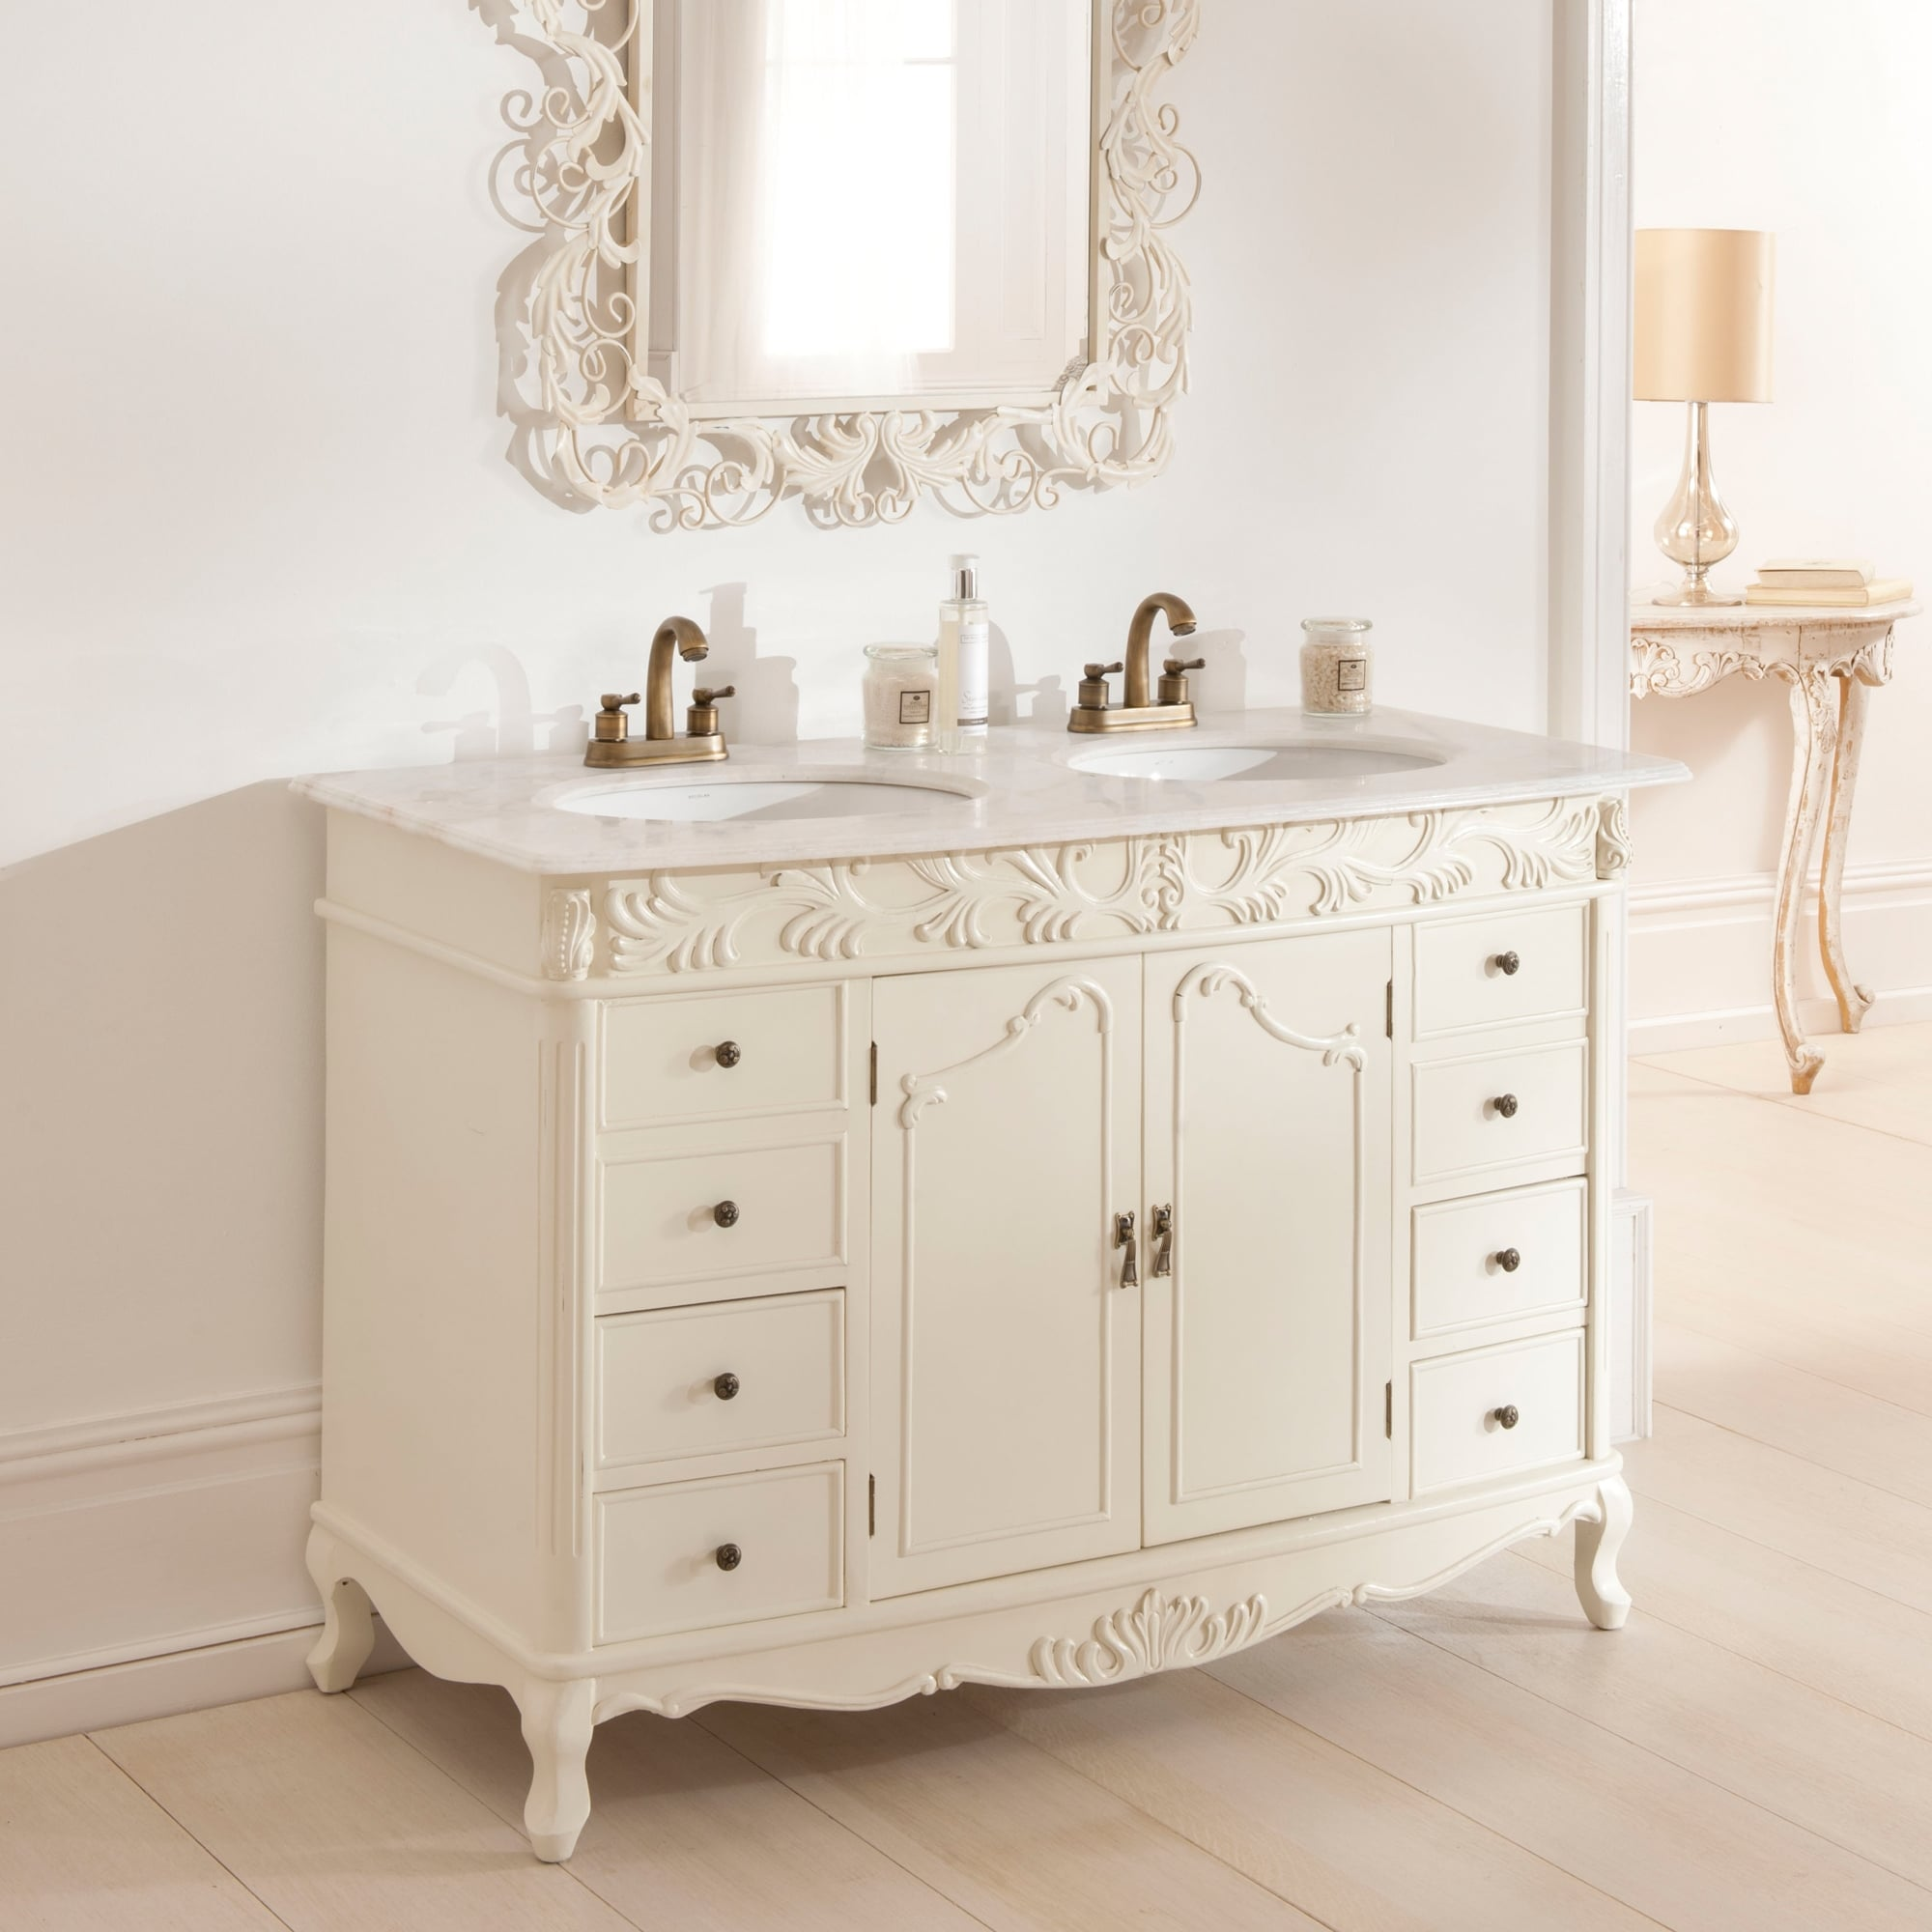 Double Antique French Vanity Unit